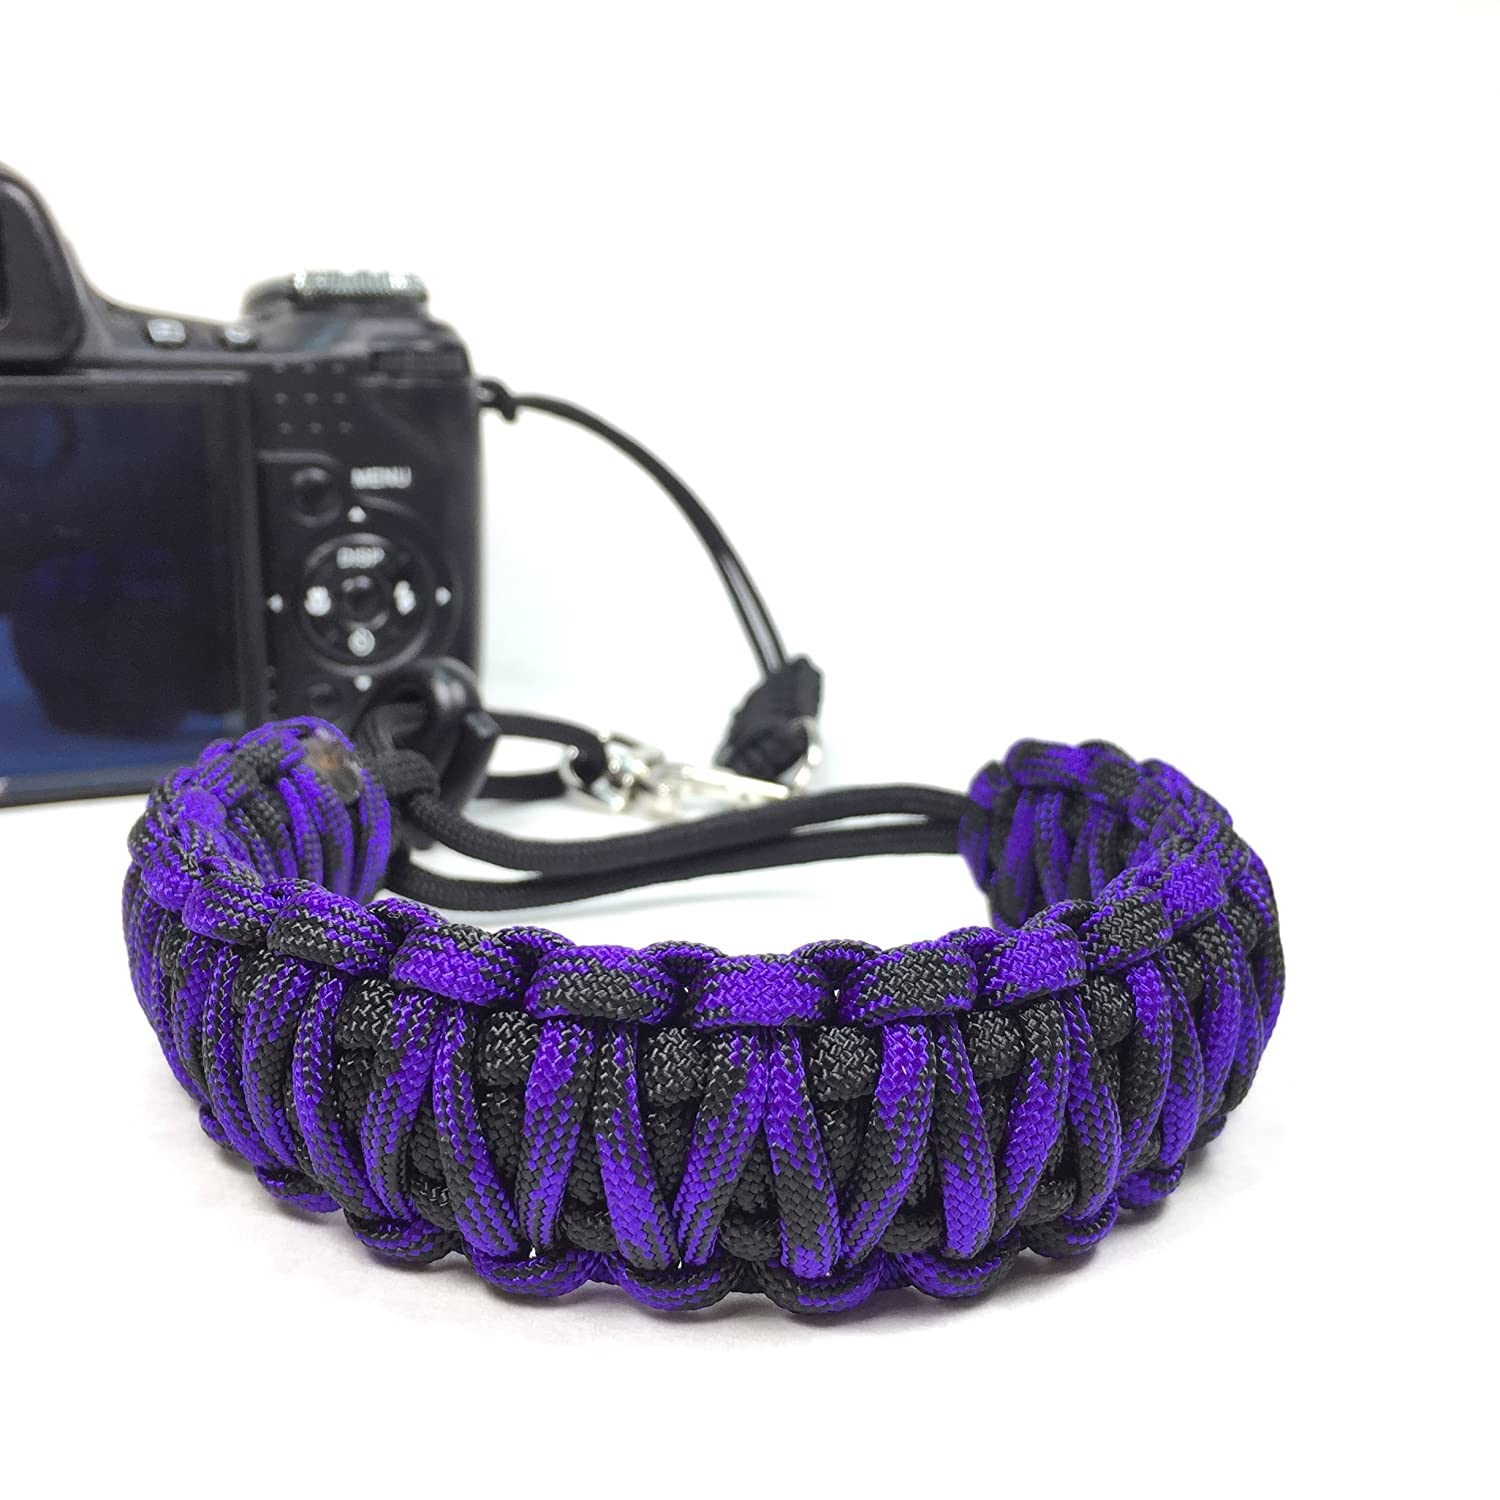 Blackberry Purple and Black King Cobra Paracord Best Camera Wrist Strap - Comfortable Camera Strap - Best Camera Strap For DSLR Cameras